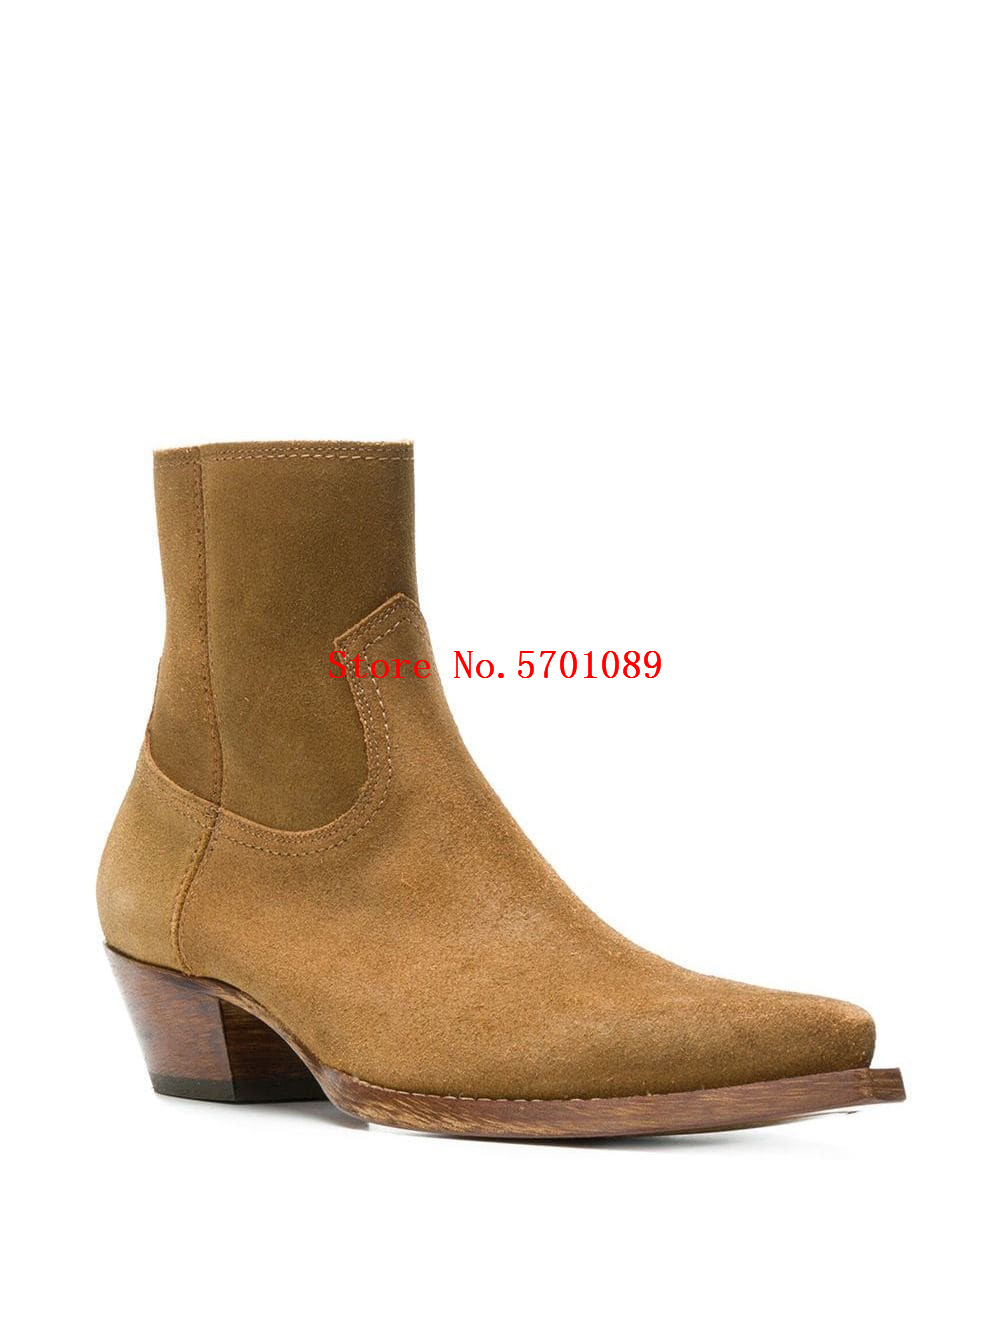 Man Shoes Lukas 40 Ankle Boots Brown Calf Leather Suede Pointed Toe Side Zip Stacked Heel Chelsea Boots Western Cowboy Boots